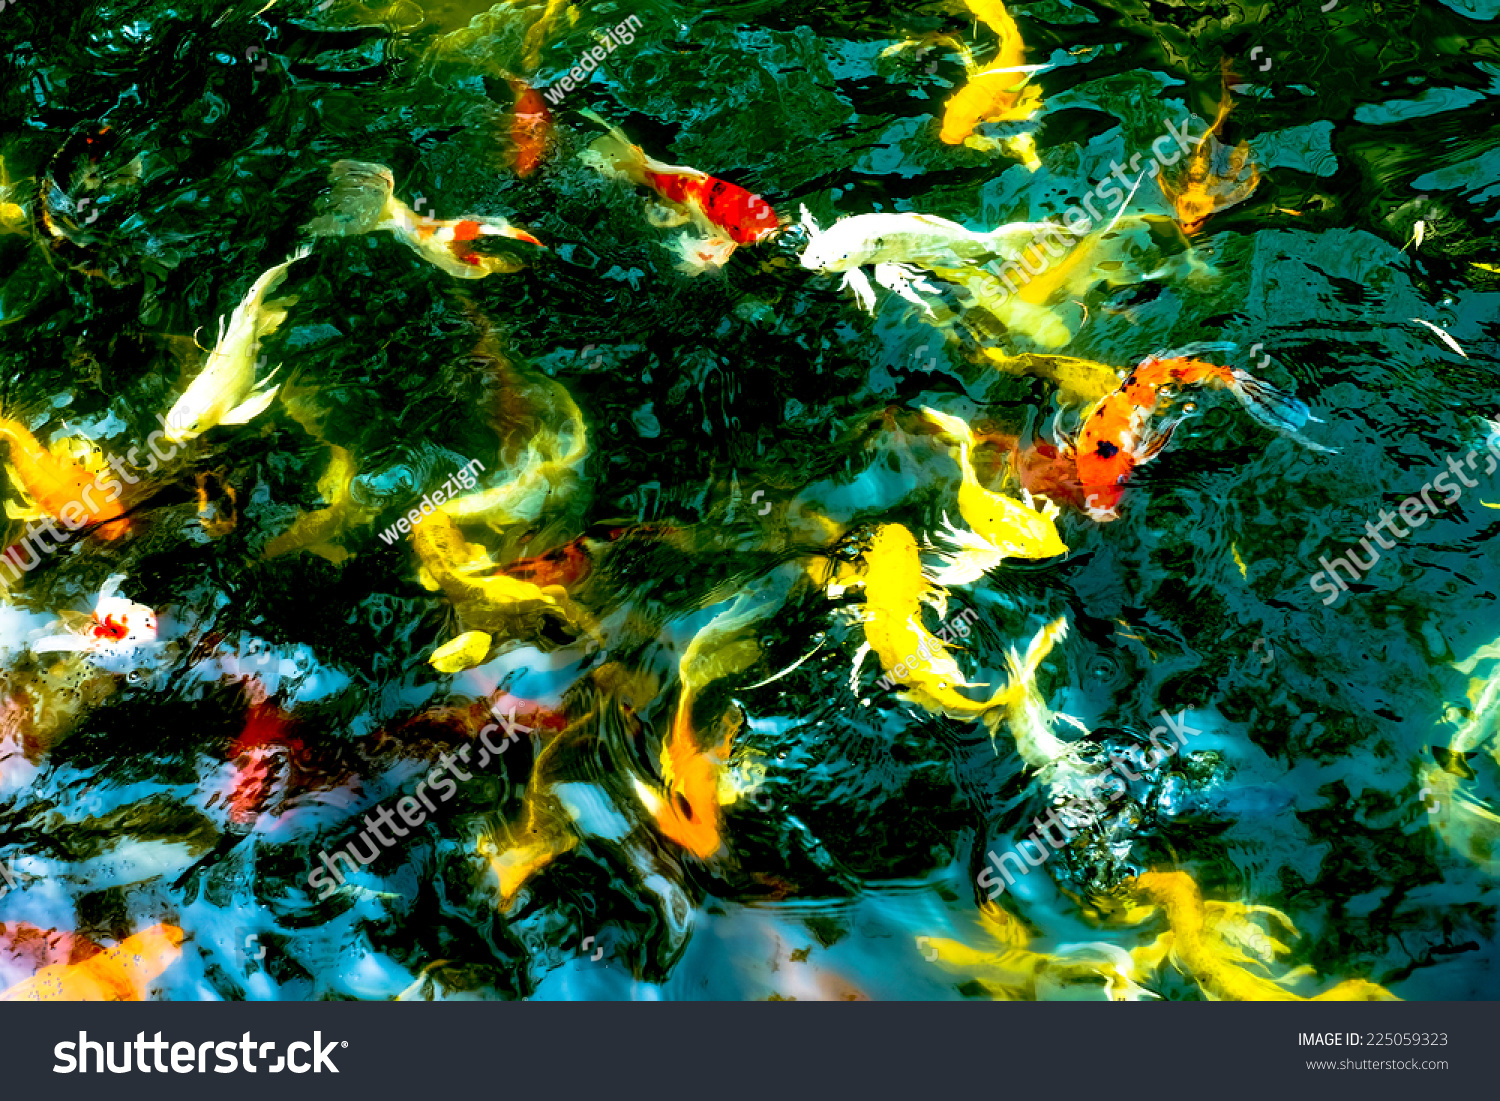 Koi Fish Dark Pondcolorful Natural Background Stock Photo (Royalty ...